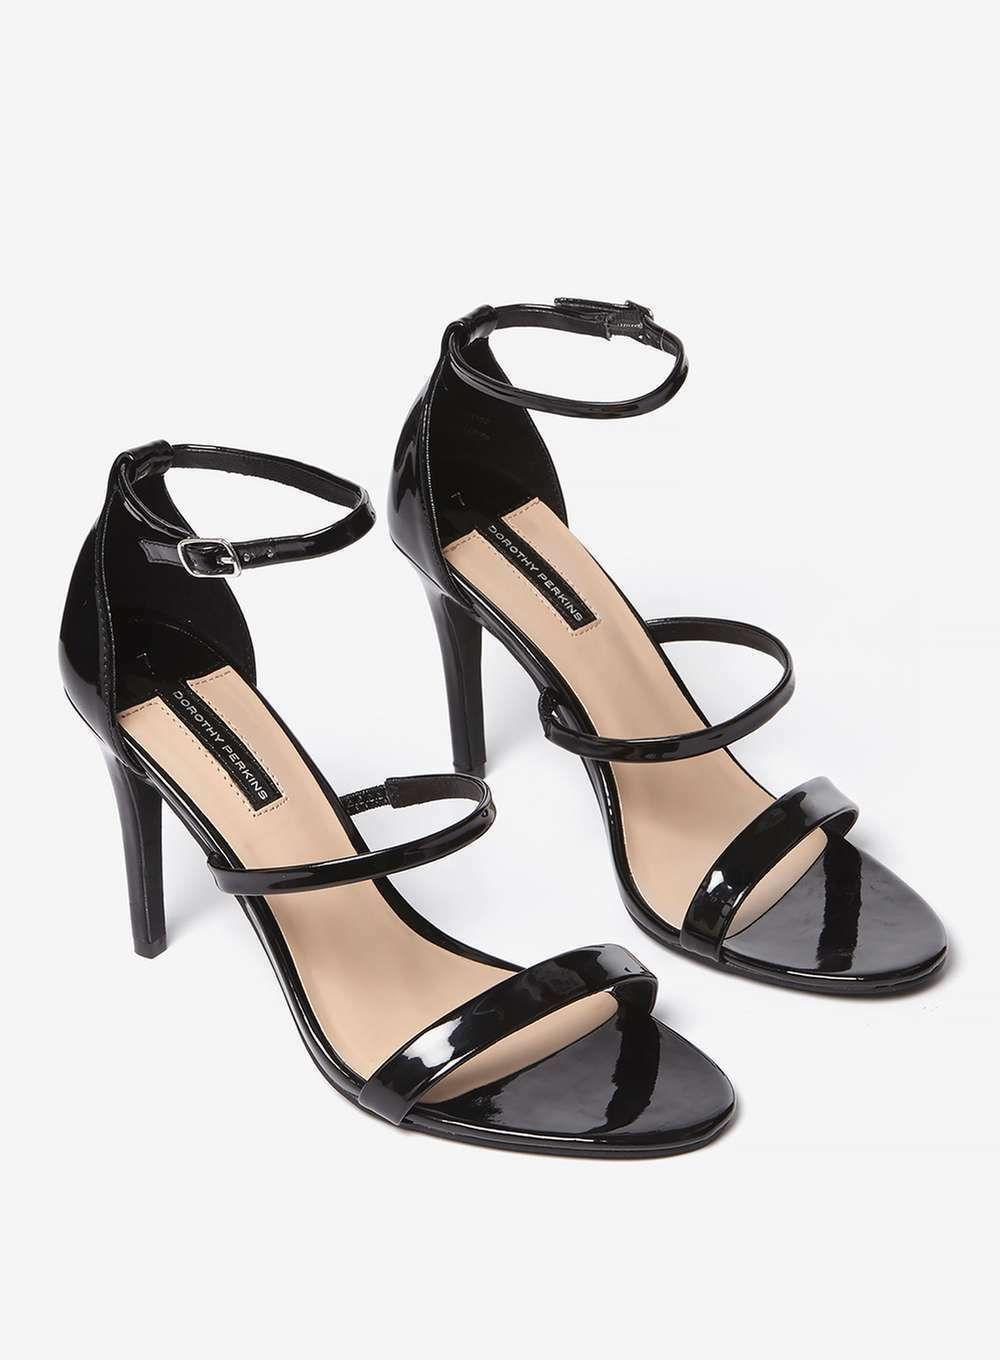 Dorothy Perkins Black High Heels Party Evening Office shoes (NEW) size 5 £30.00